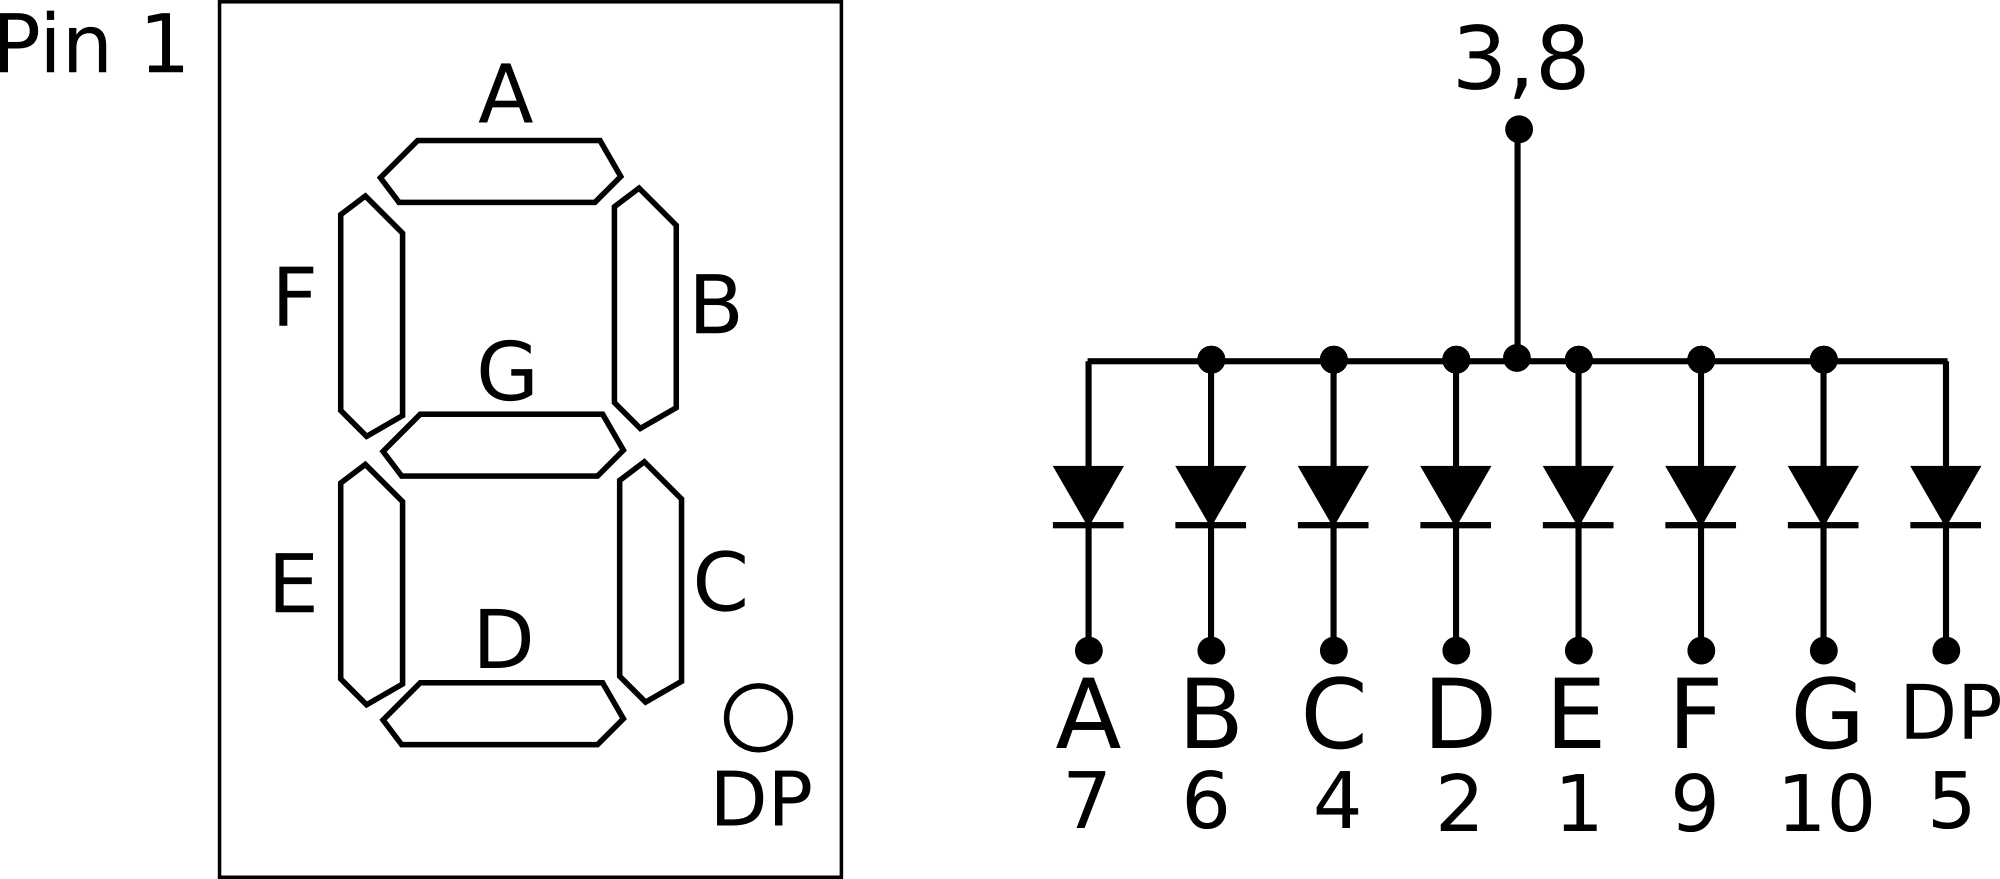 Lcd 7 Segment Display Schematic Decoder Circuit Diagram